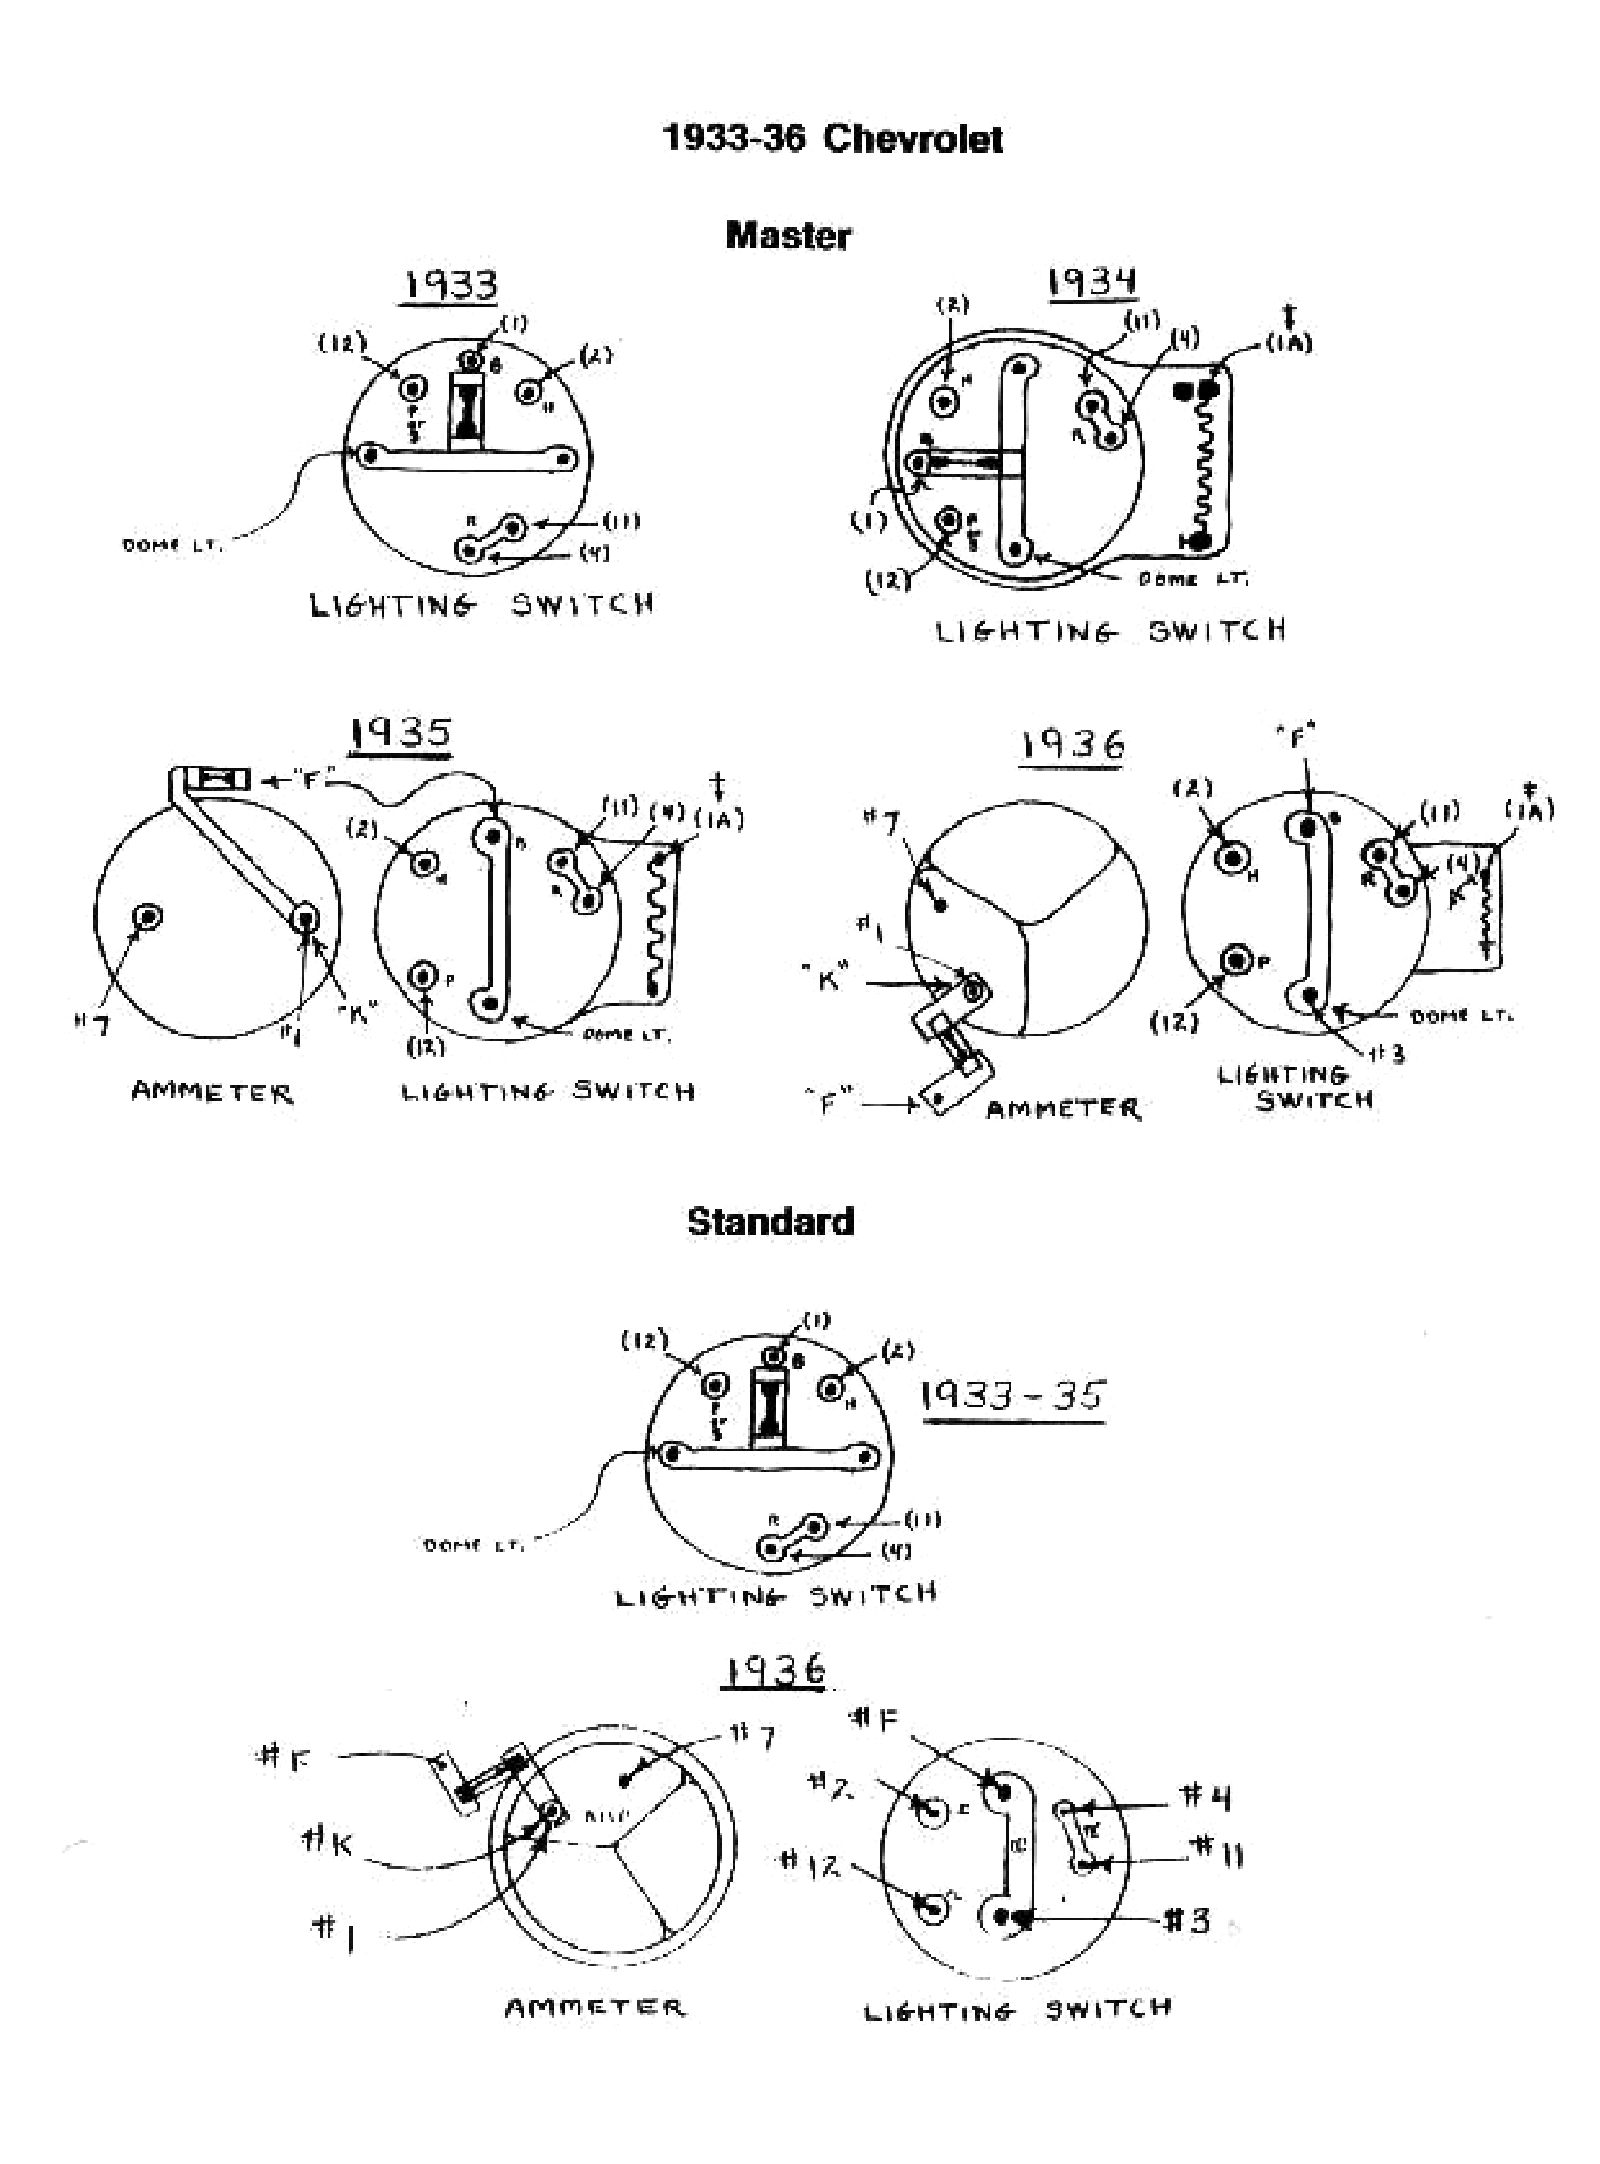 Wiring Manual PDF: 1935 Chevy Wiring Diagram